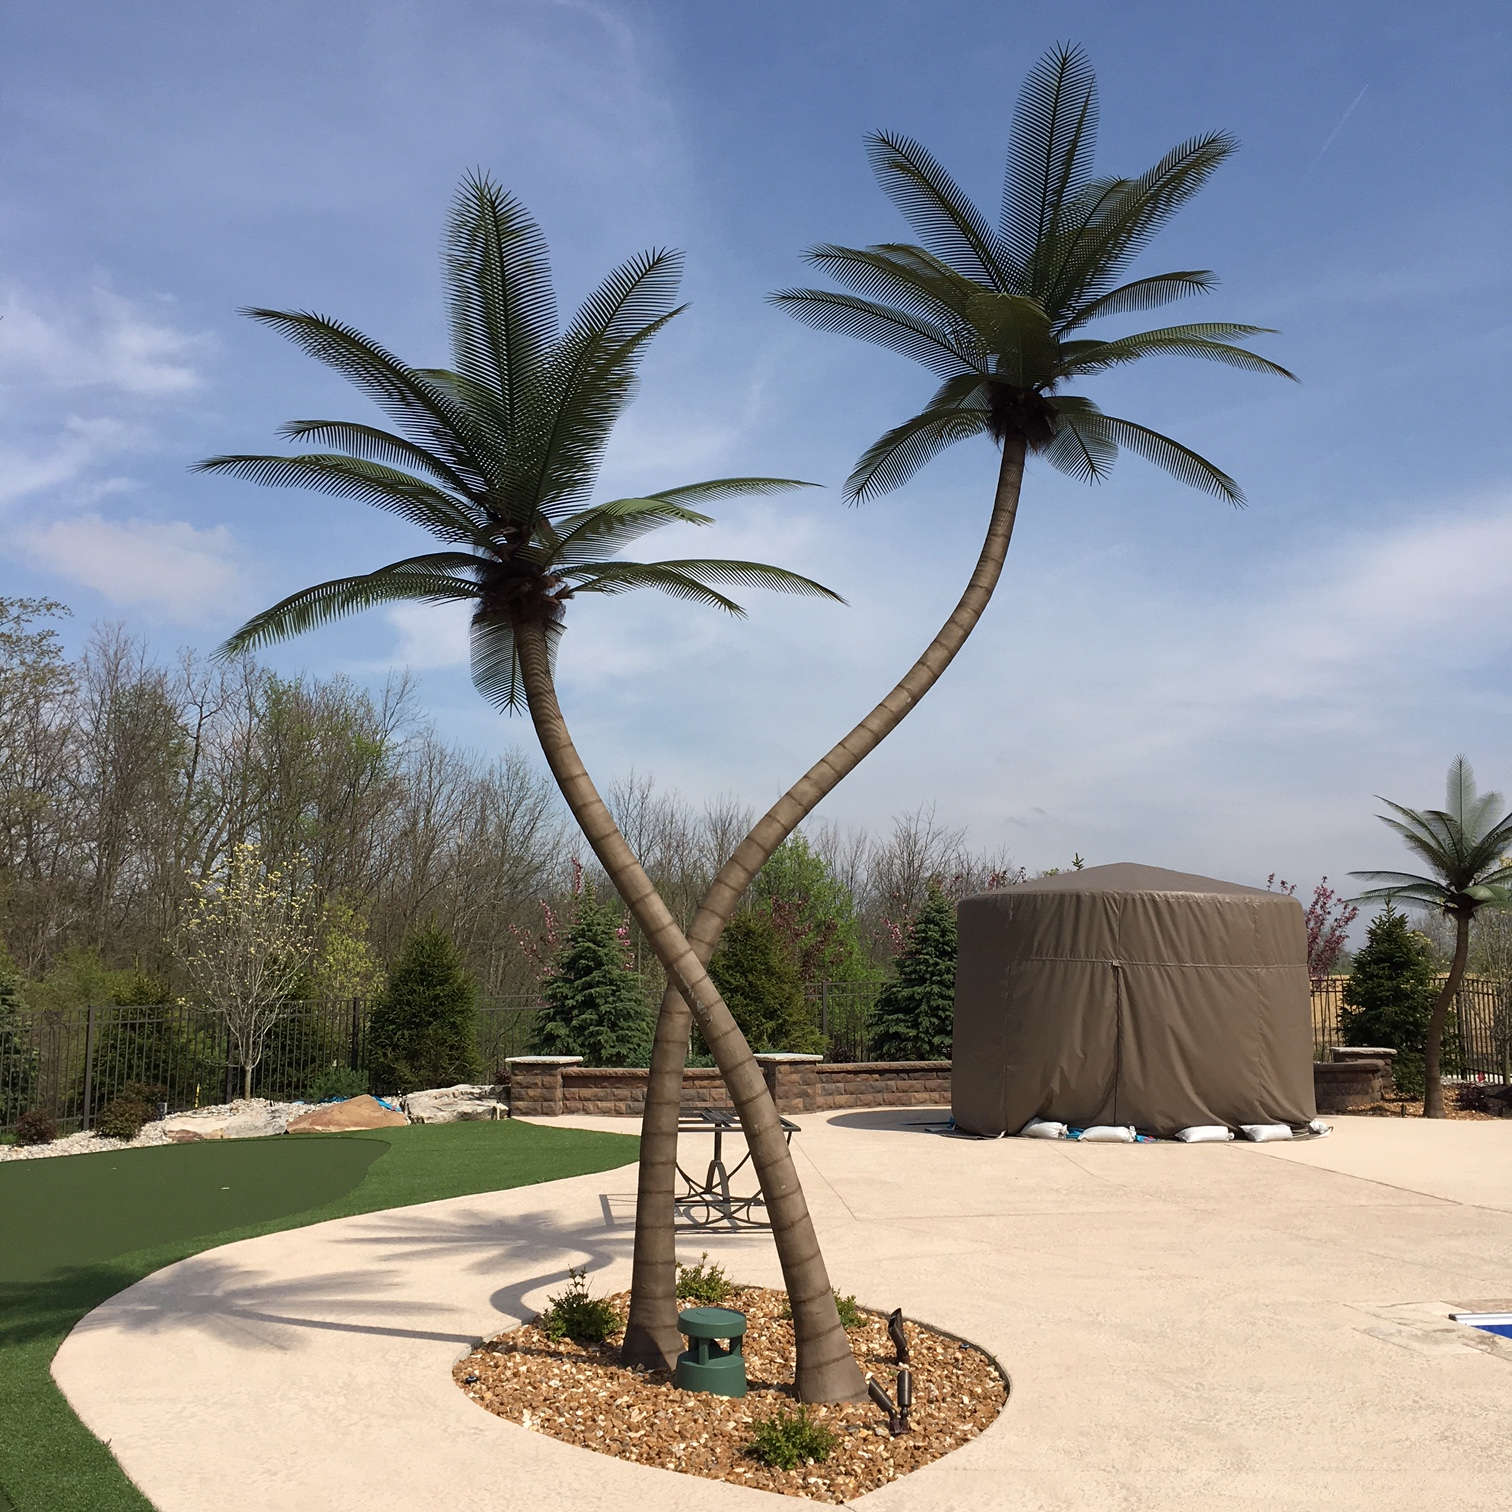 image of an artificial palm tree